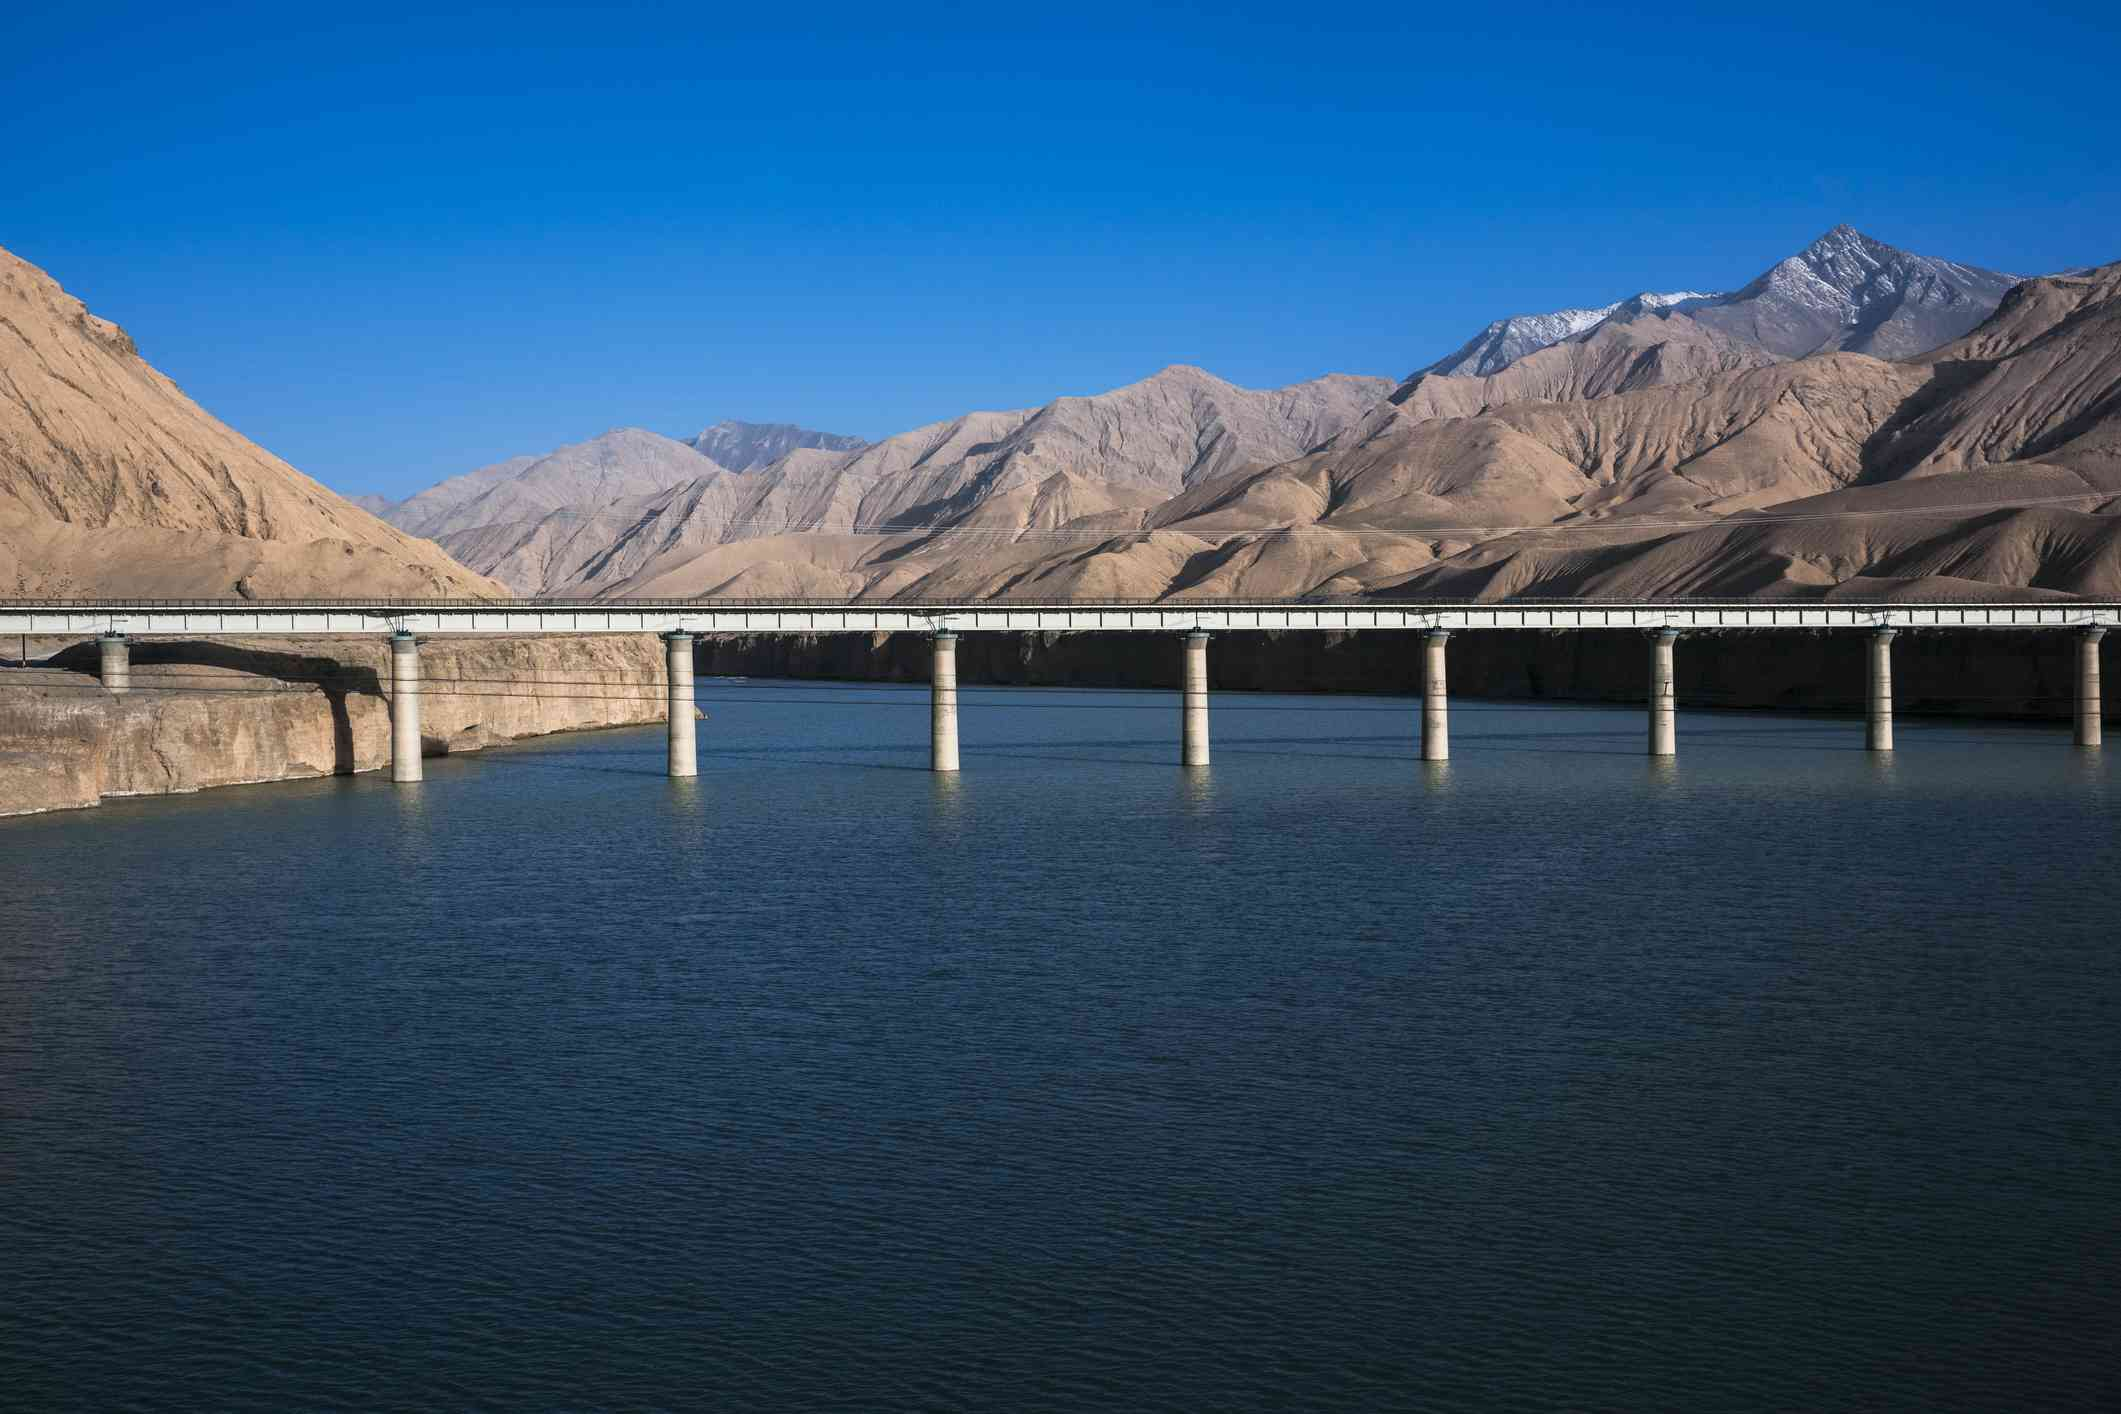 Qinghai-Tibet Railway tracks crossing over water, surrounded by mountains